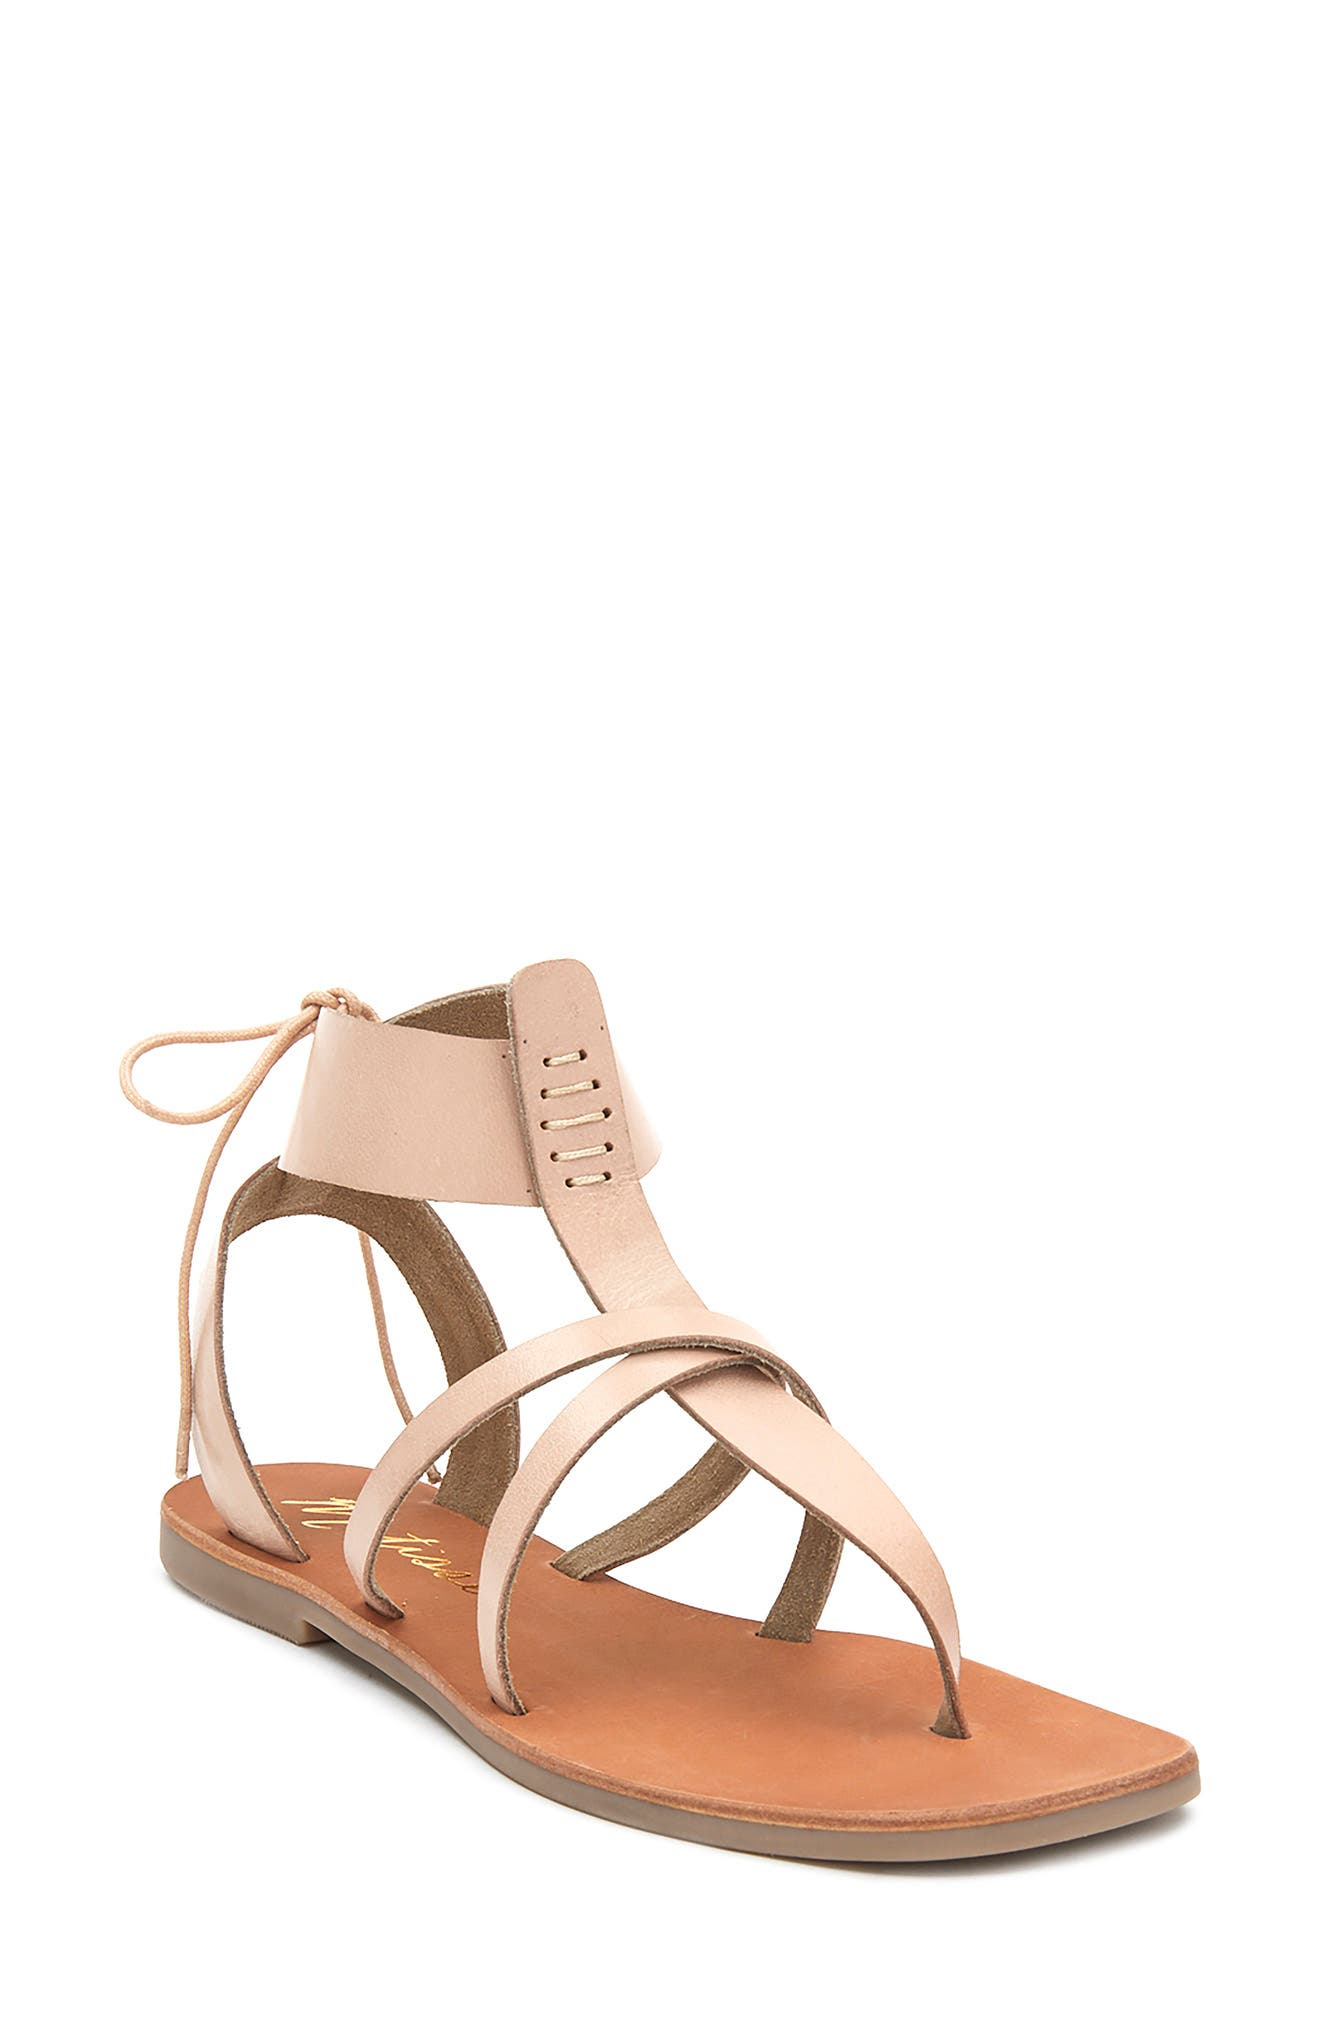 Lay Up Strappy Sandal